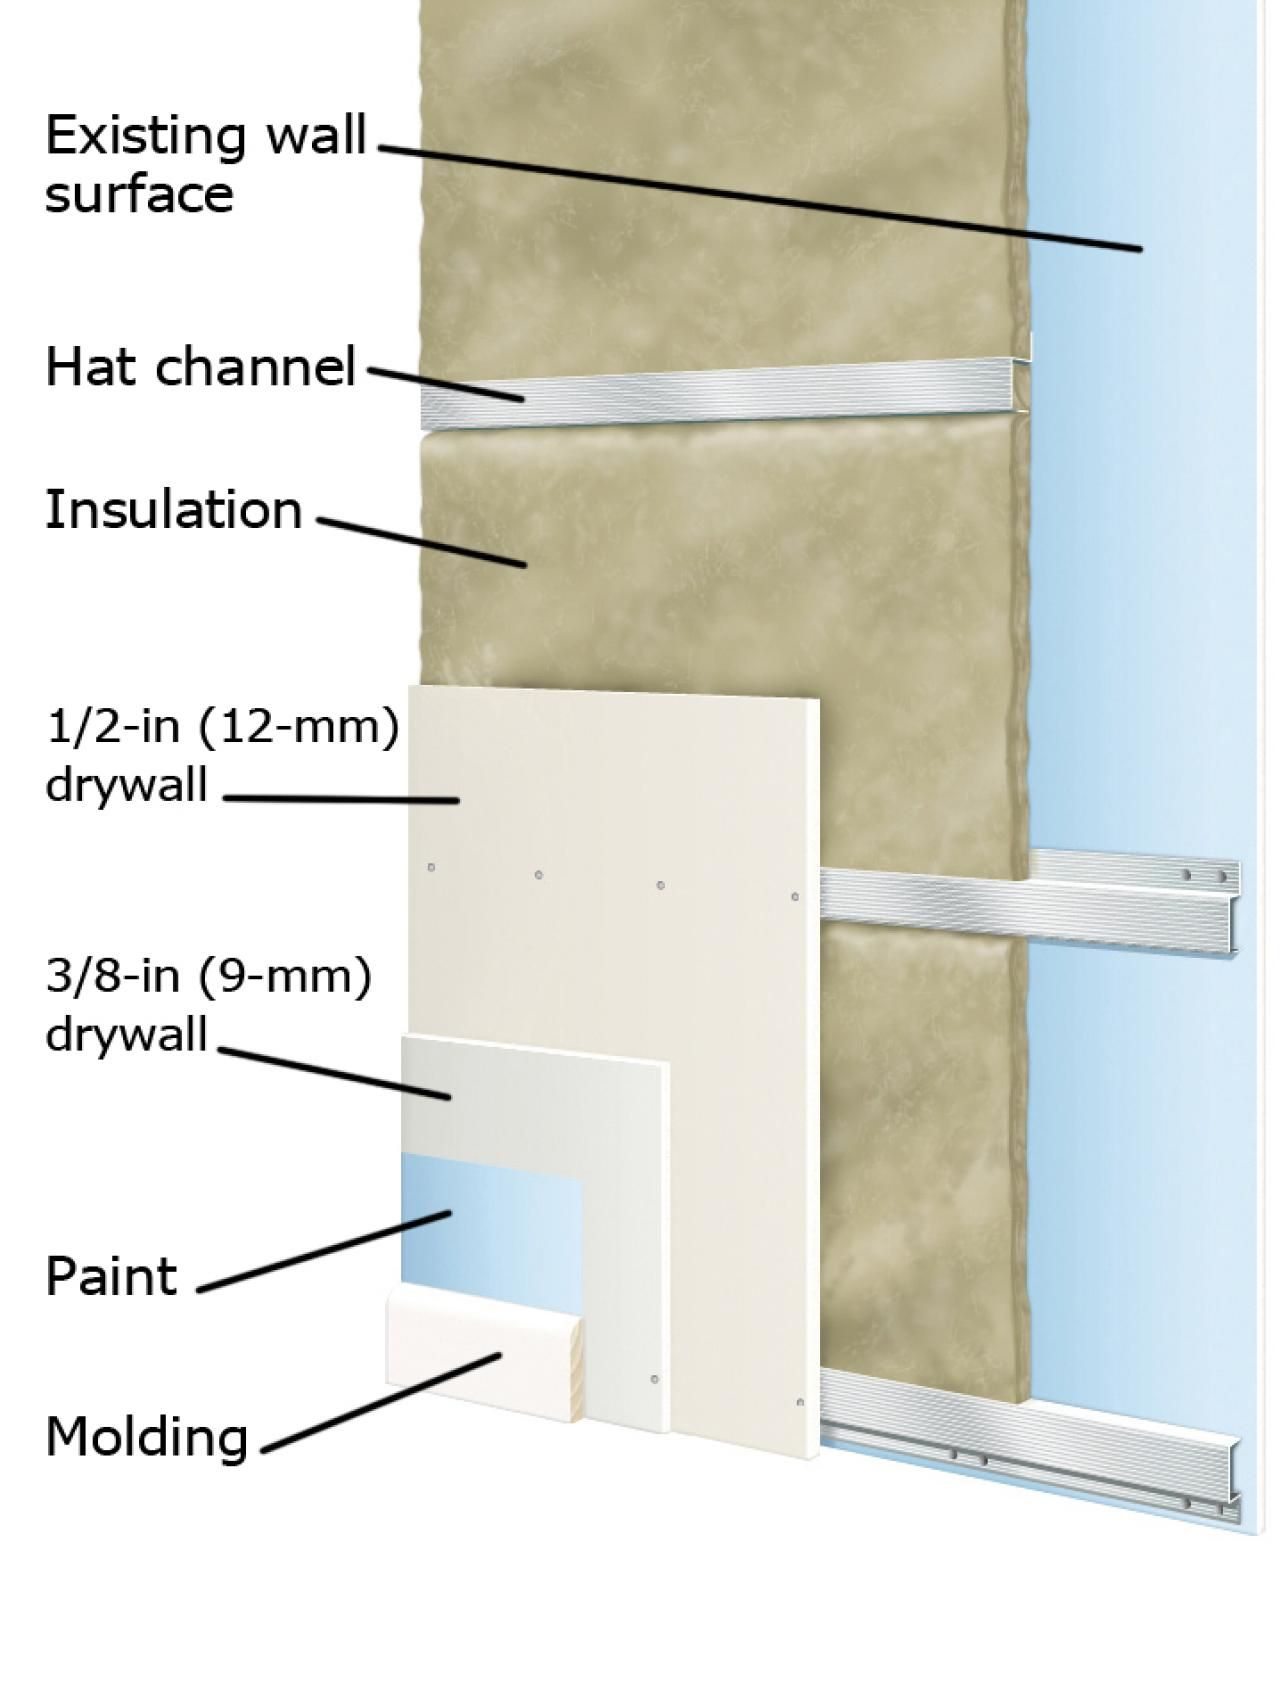 Soundproofing a Wall | Details | Pinterest | Walls, Room and ...